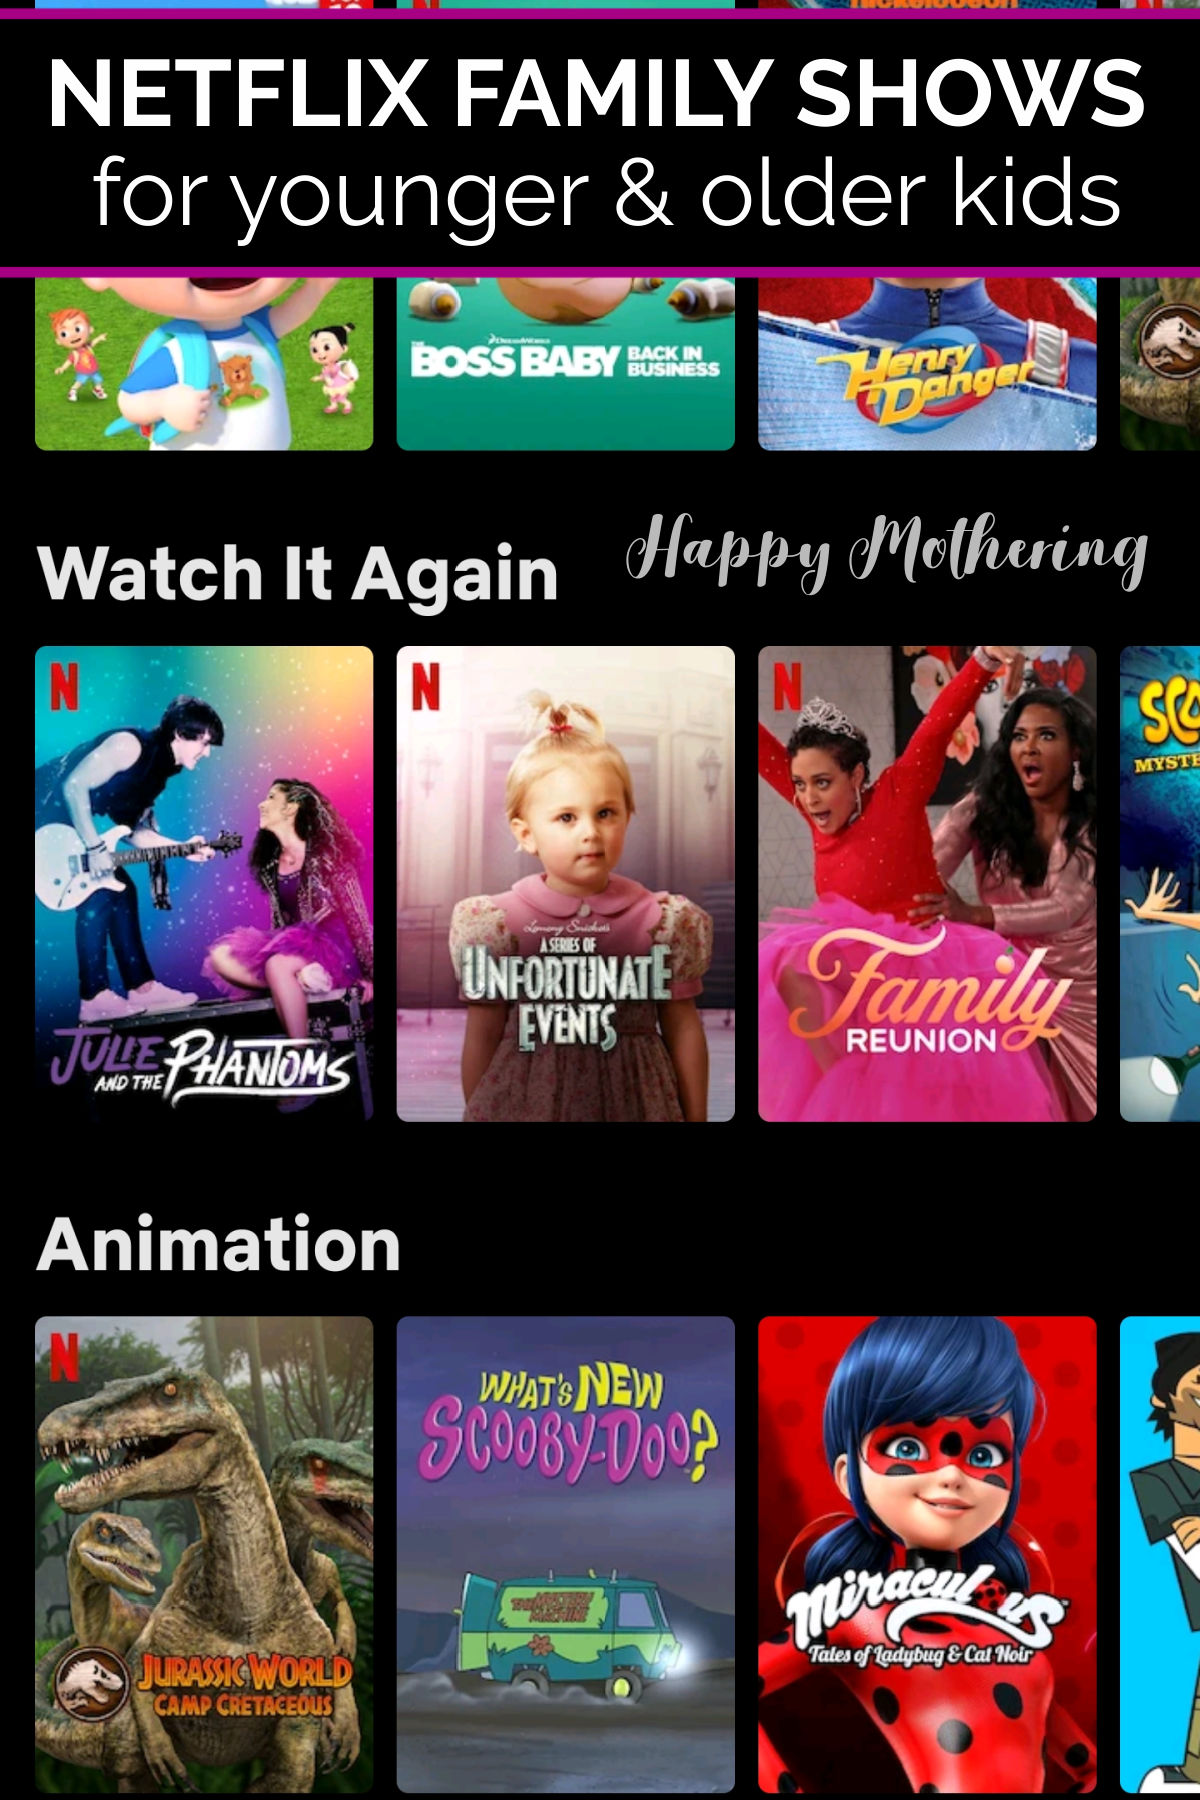 Screenshot from Netflix mobile app of family shows on Netflix.